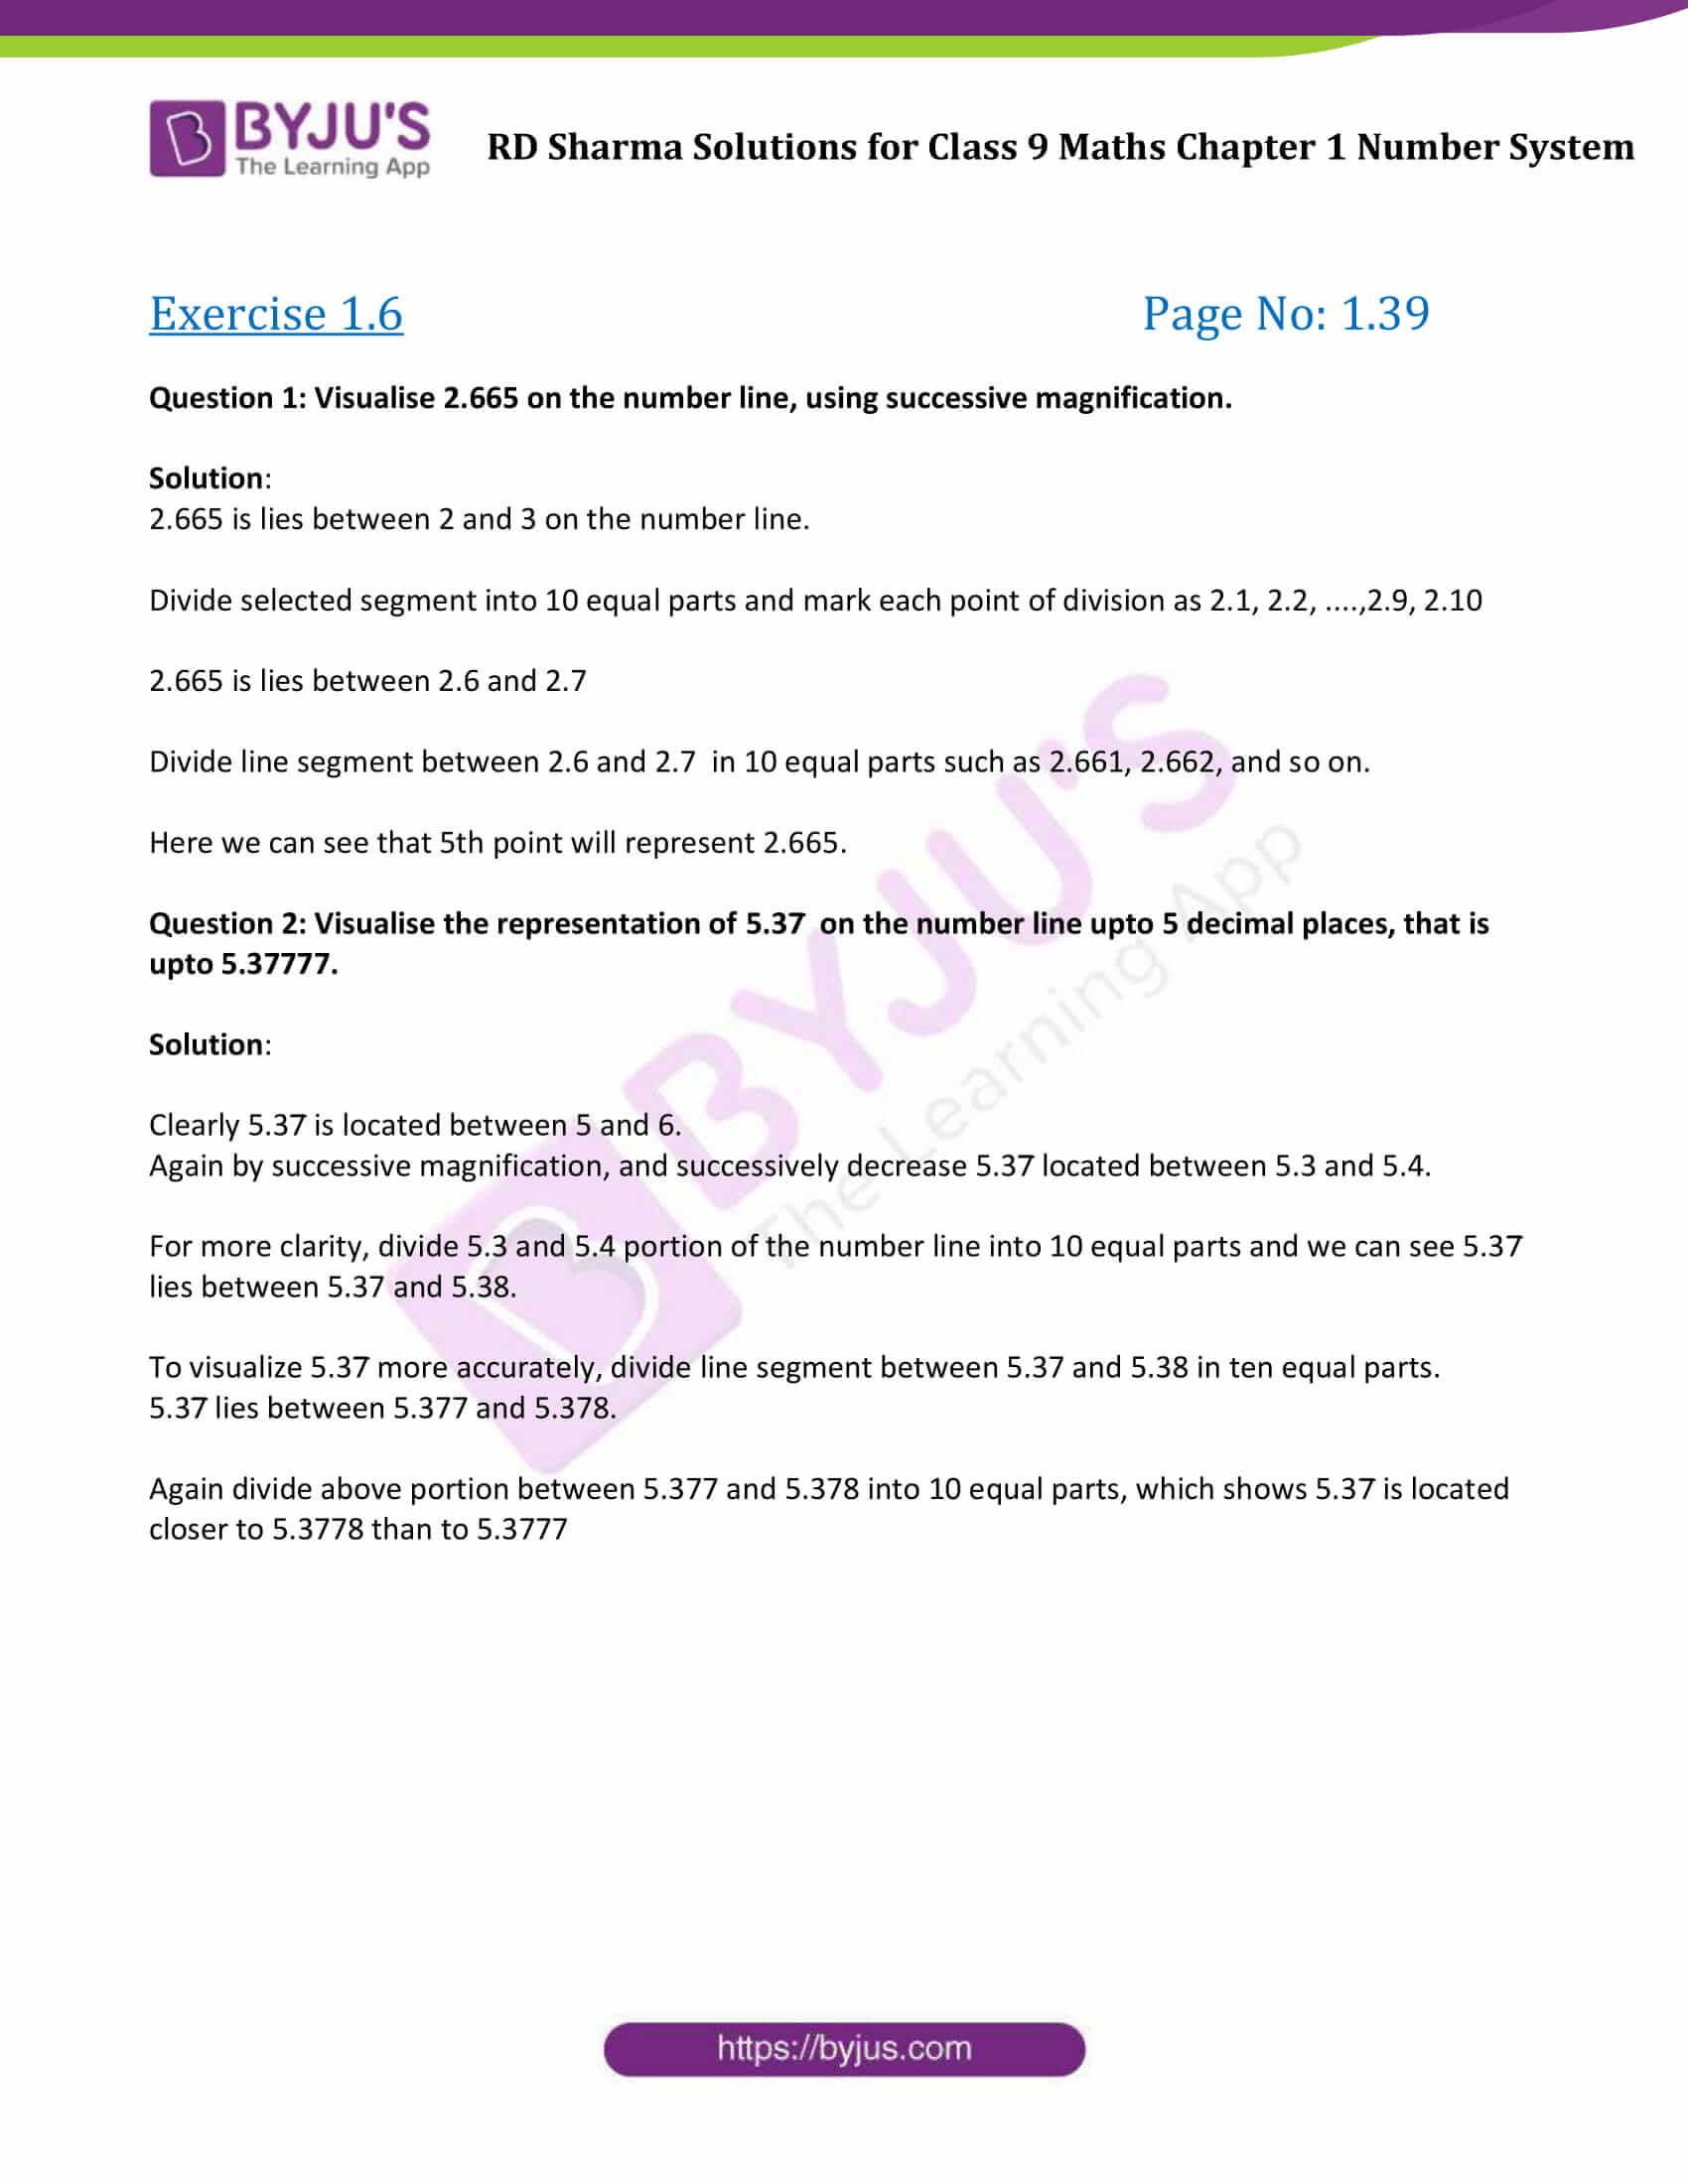 RD Sharma Solution class 9 Maths Chapter 1 Number System 24